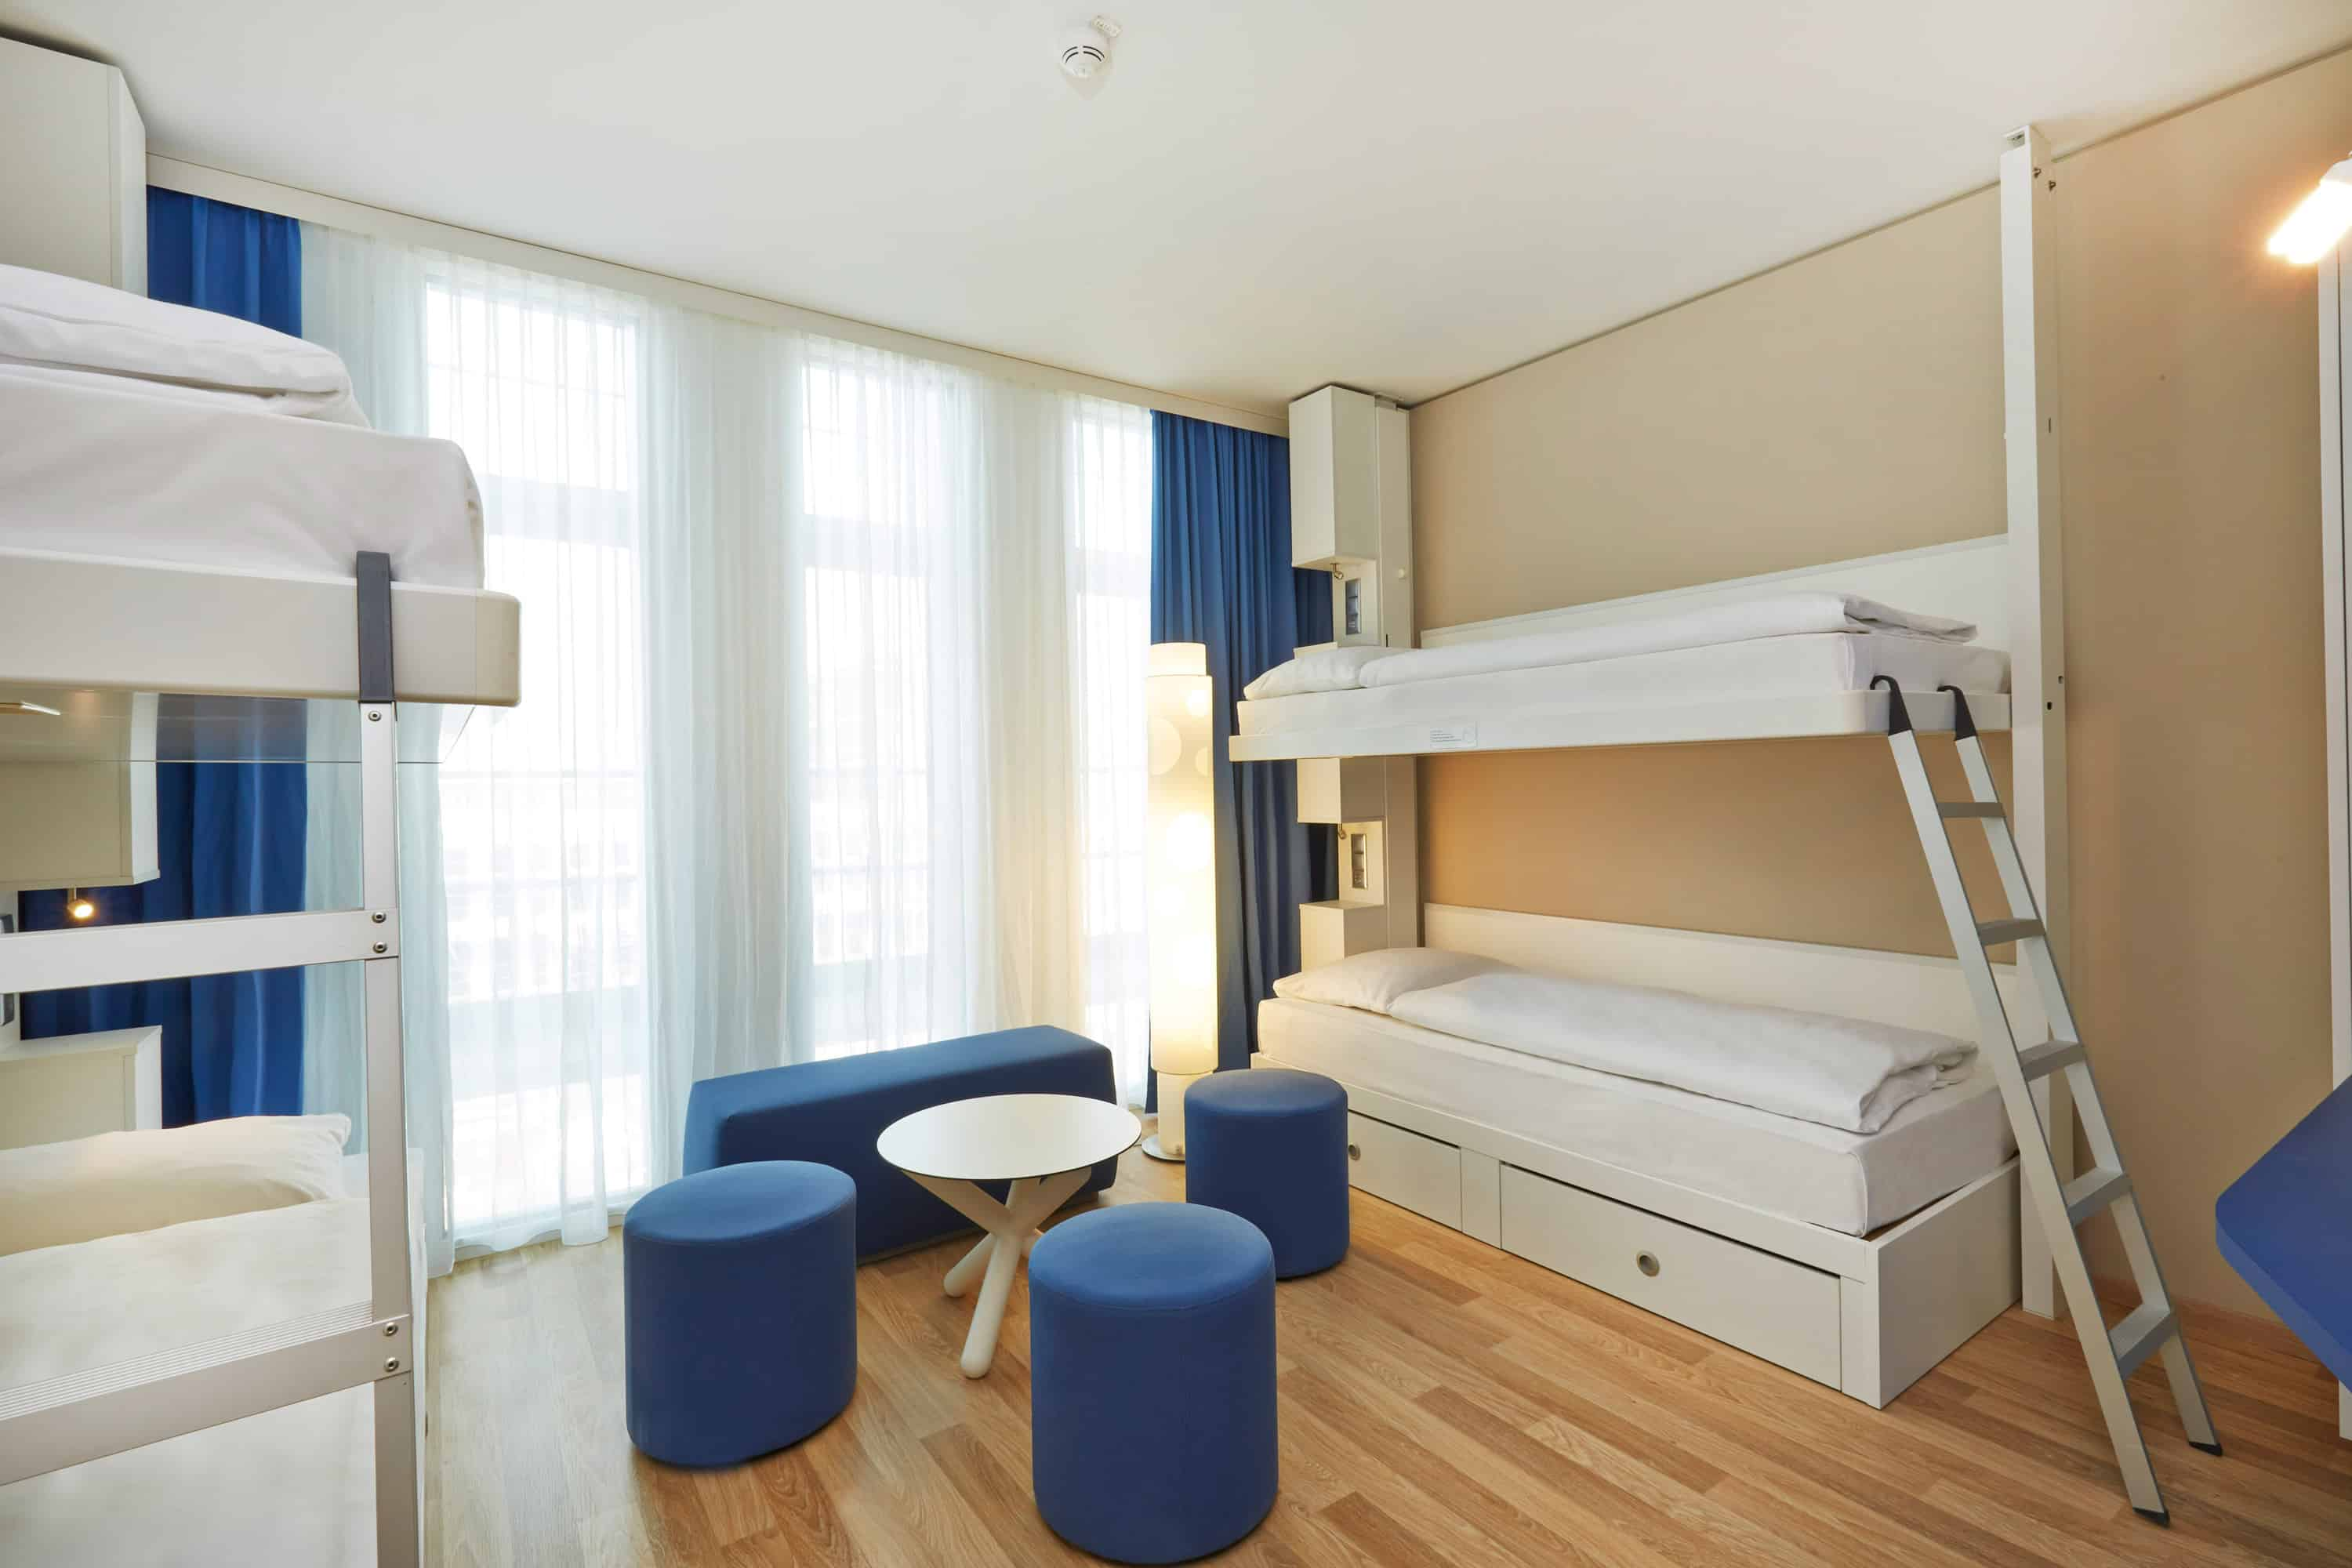 h-hotels_zimmer_vierbettzimmer_03_h2_hotel_muenchen_messe_L (max. 3000px) _ab67a9b8